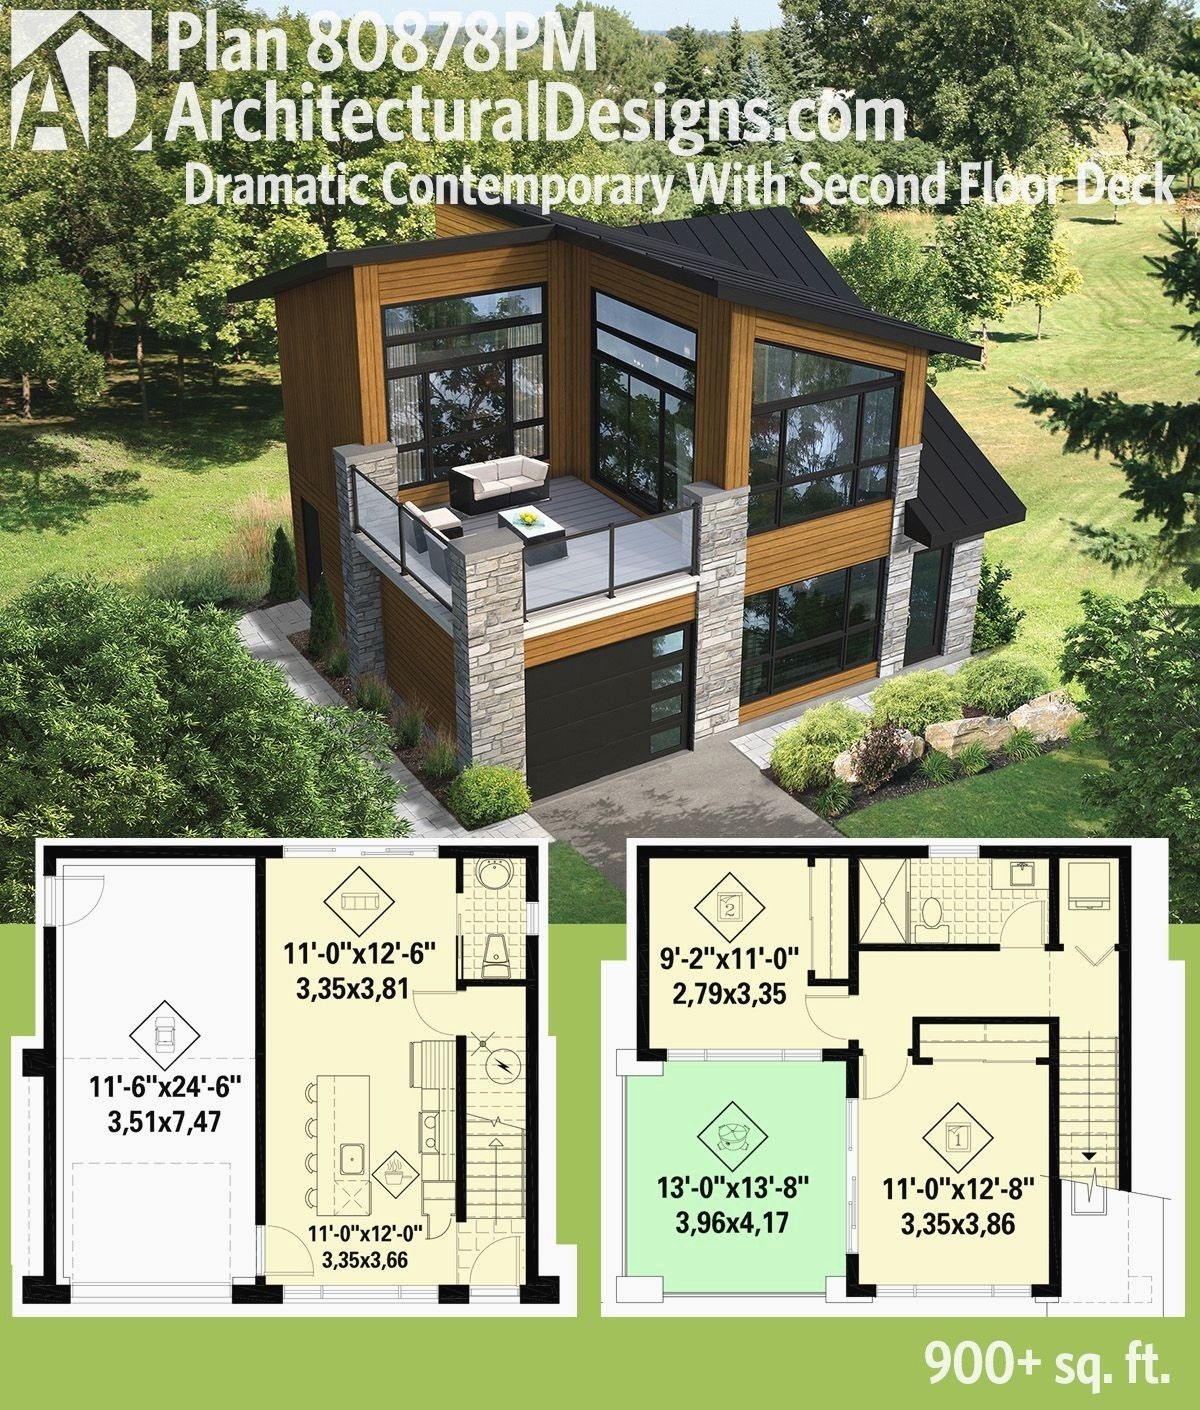 Modern House With Shed Roof Beautiful Plan Pm Dramatic Contemporary With Second Floor Deck Small Modern House Plans Sims House Plans Small House Design